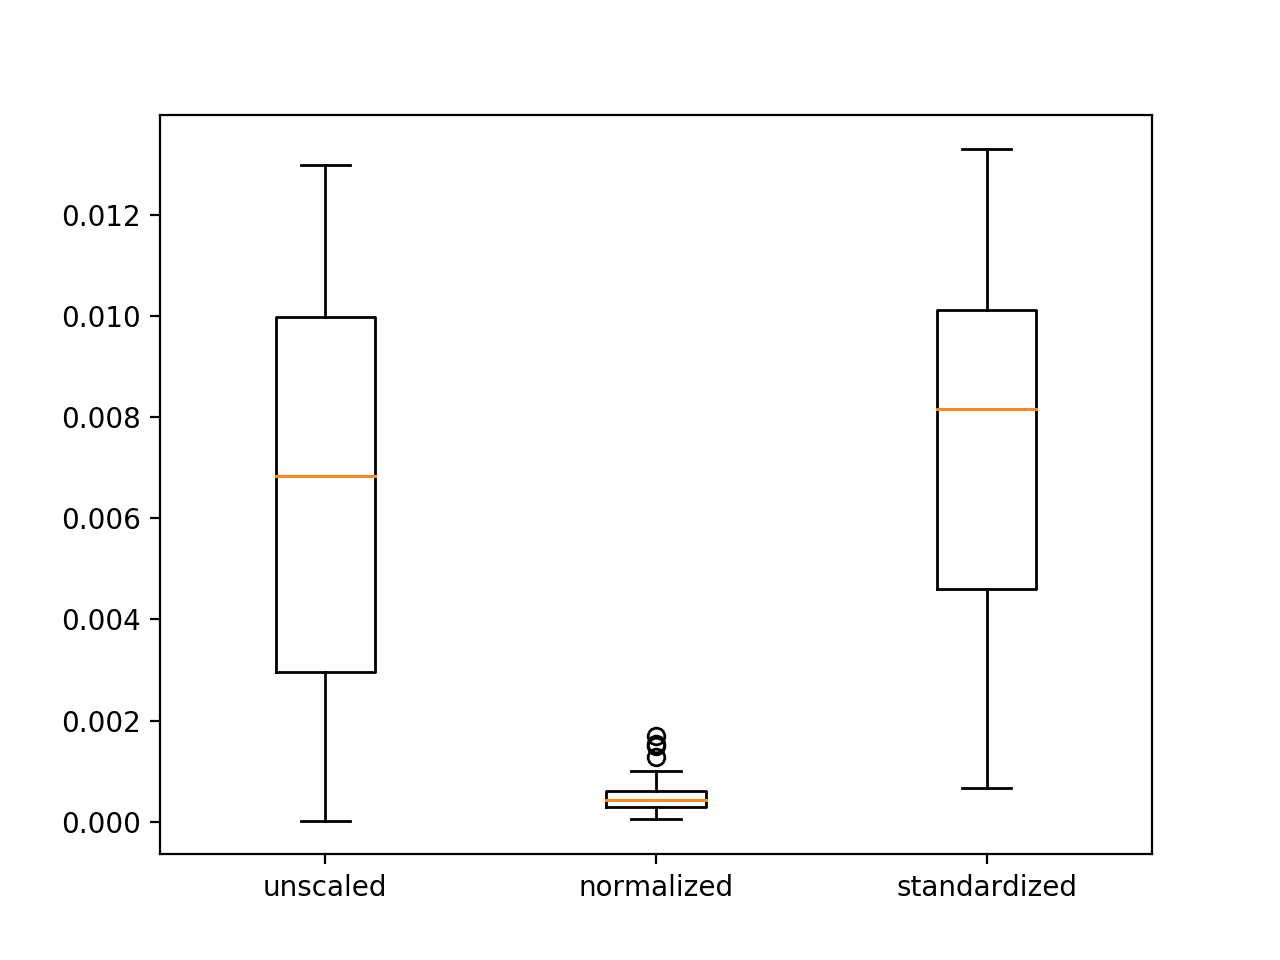 Box and Whisker Plots of Mean Squared Error With Unscaled, Normalized and Standardized Input Variables for the Regression Problem